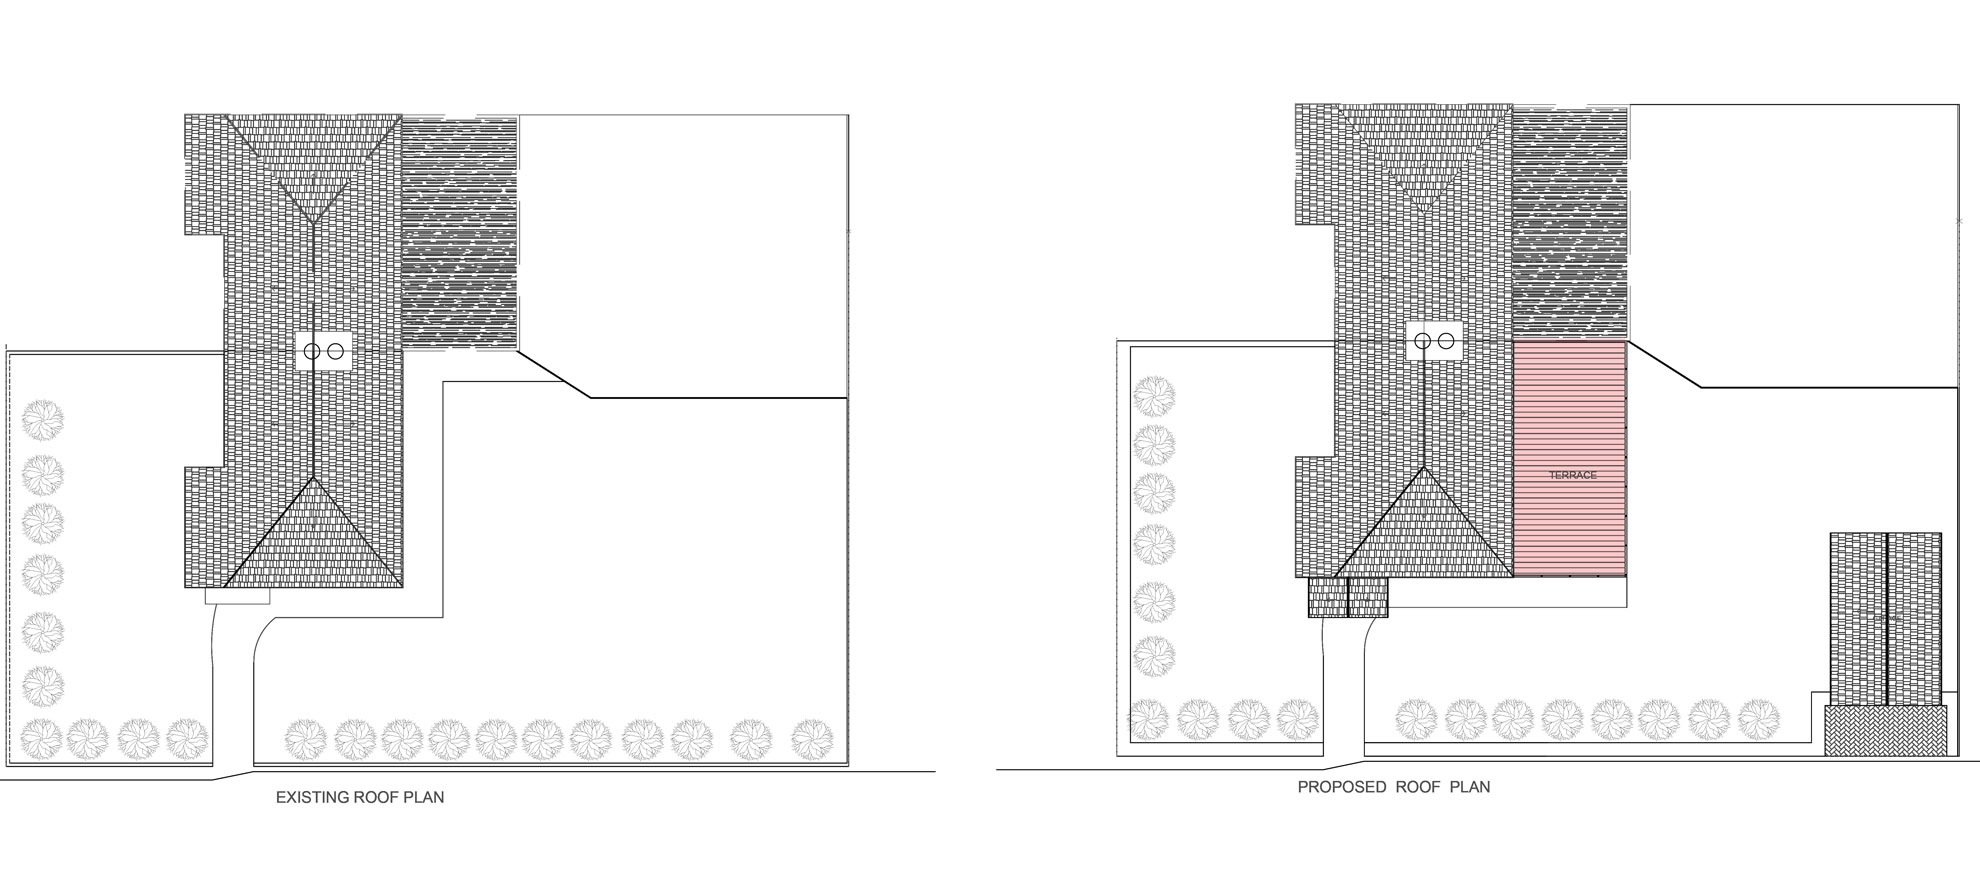 Roof-Terrace-&-Garage-conversion-in-Croydon-Roof-Plan